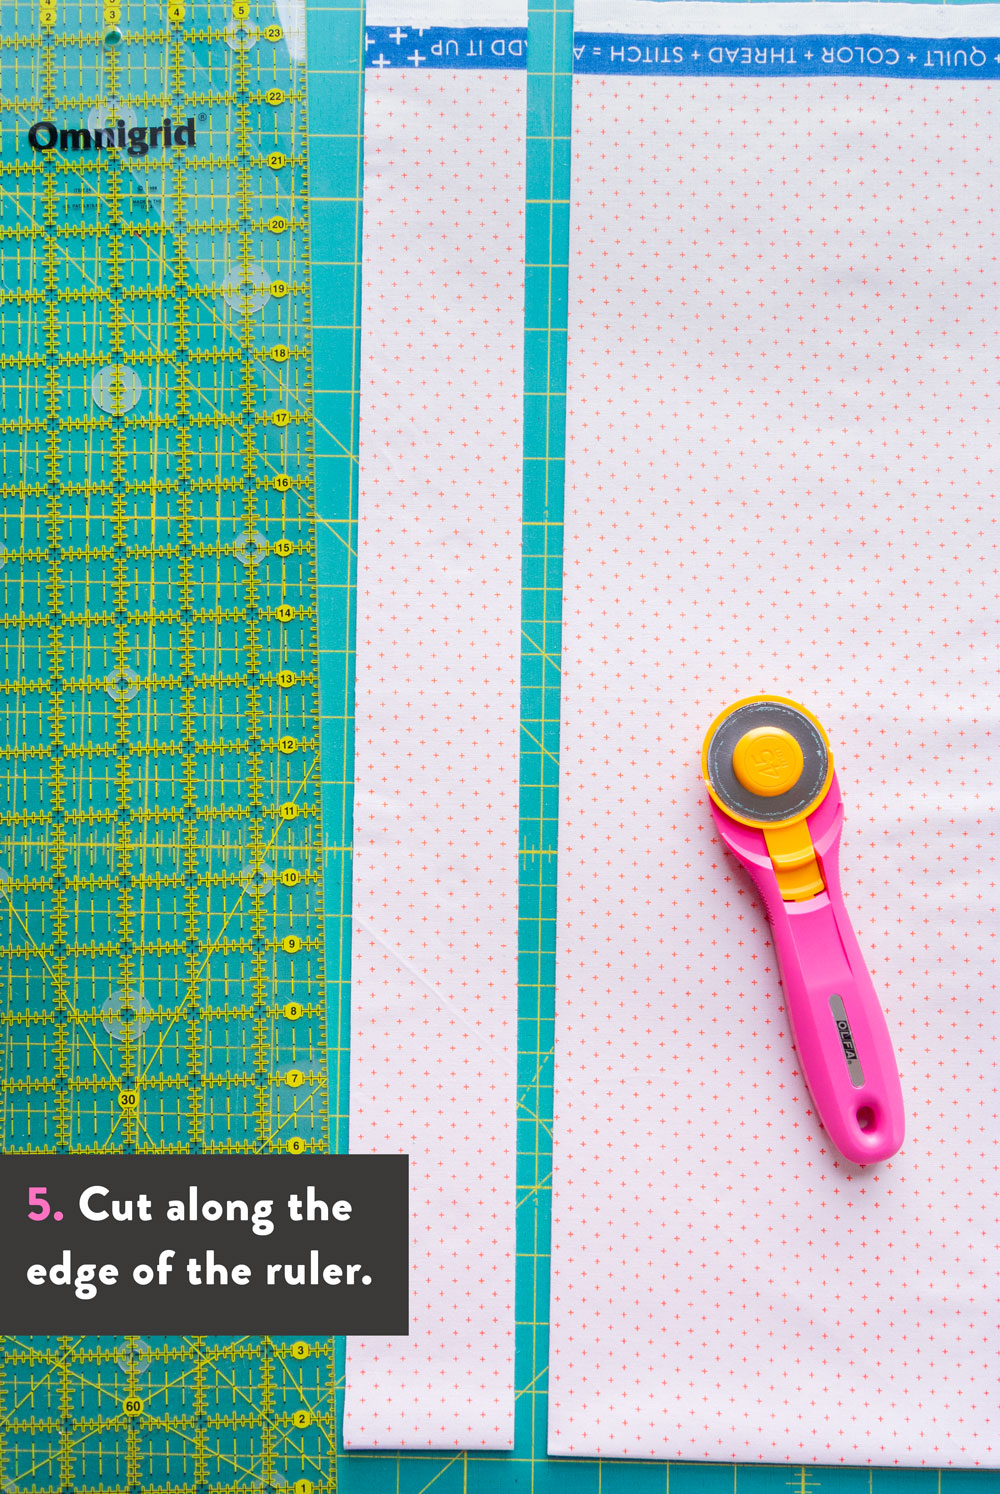 All of your common quilting questions are answered in this multi-series blog post. We cover the basics on cutting, sewing and ironing. In this post we cover an in-depth cutting tutorial and include a video!